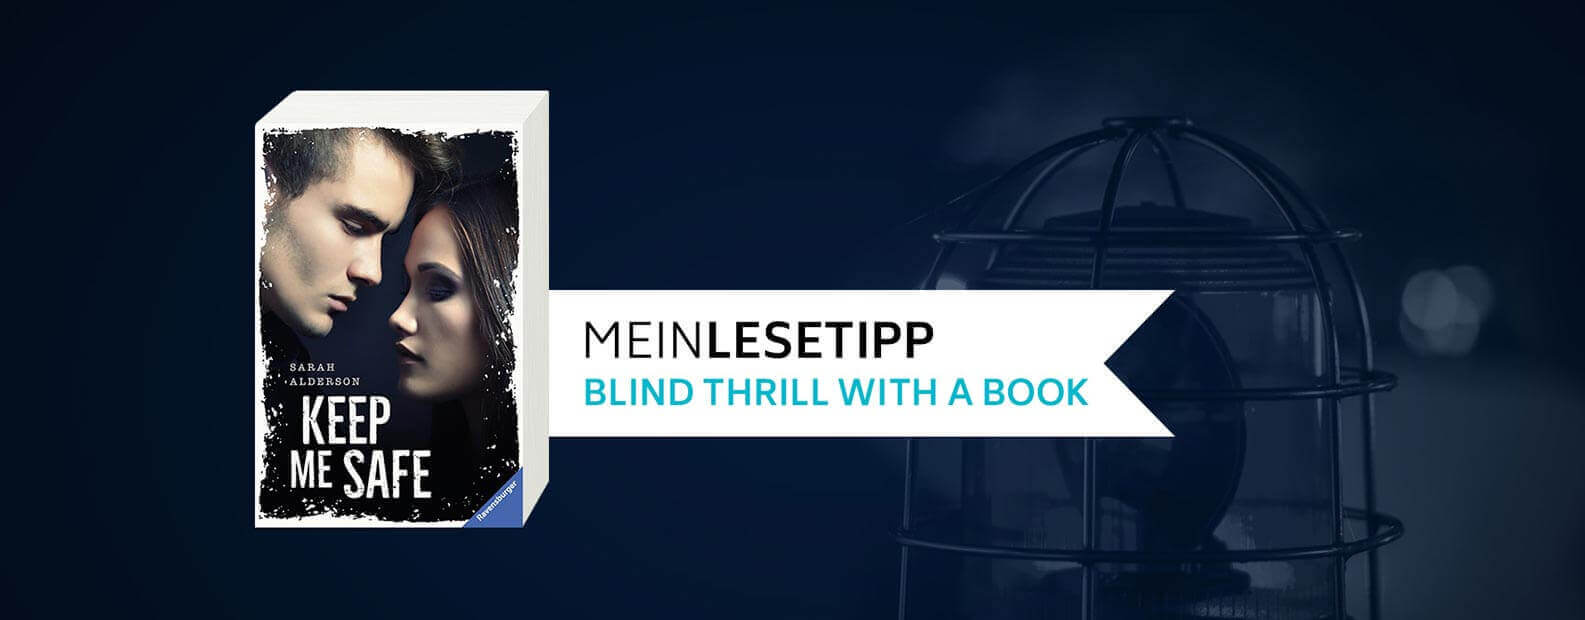 Blind Thrill with a Book